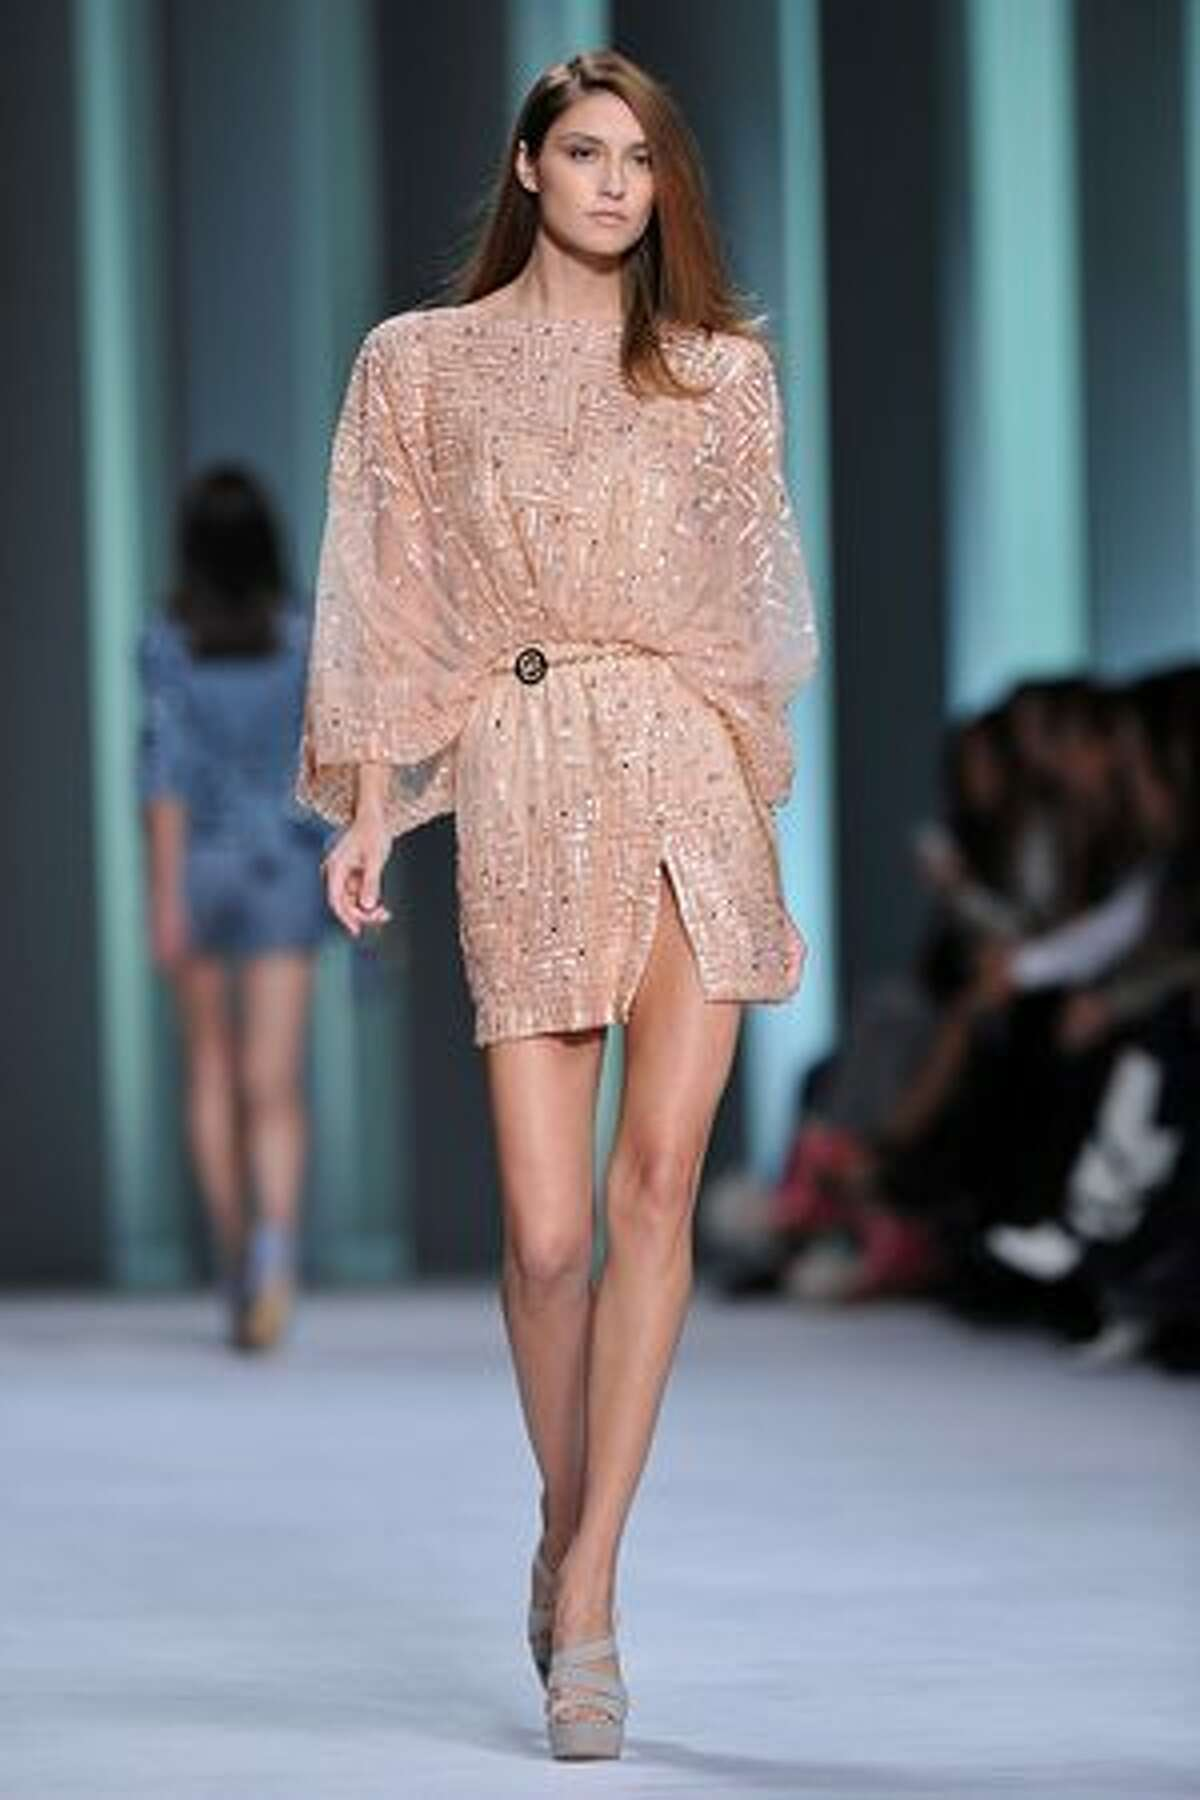 A model displays a creation by Elie Saab.